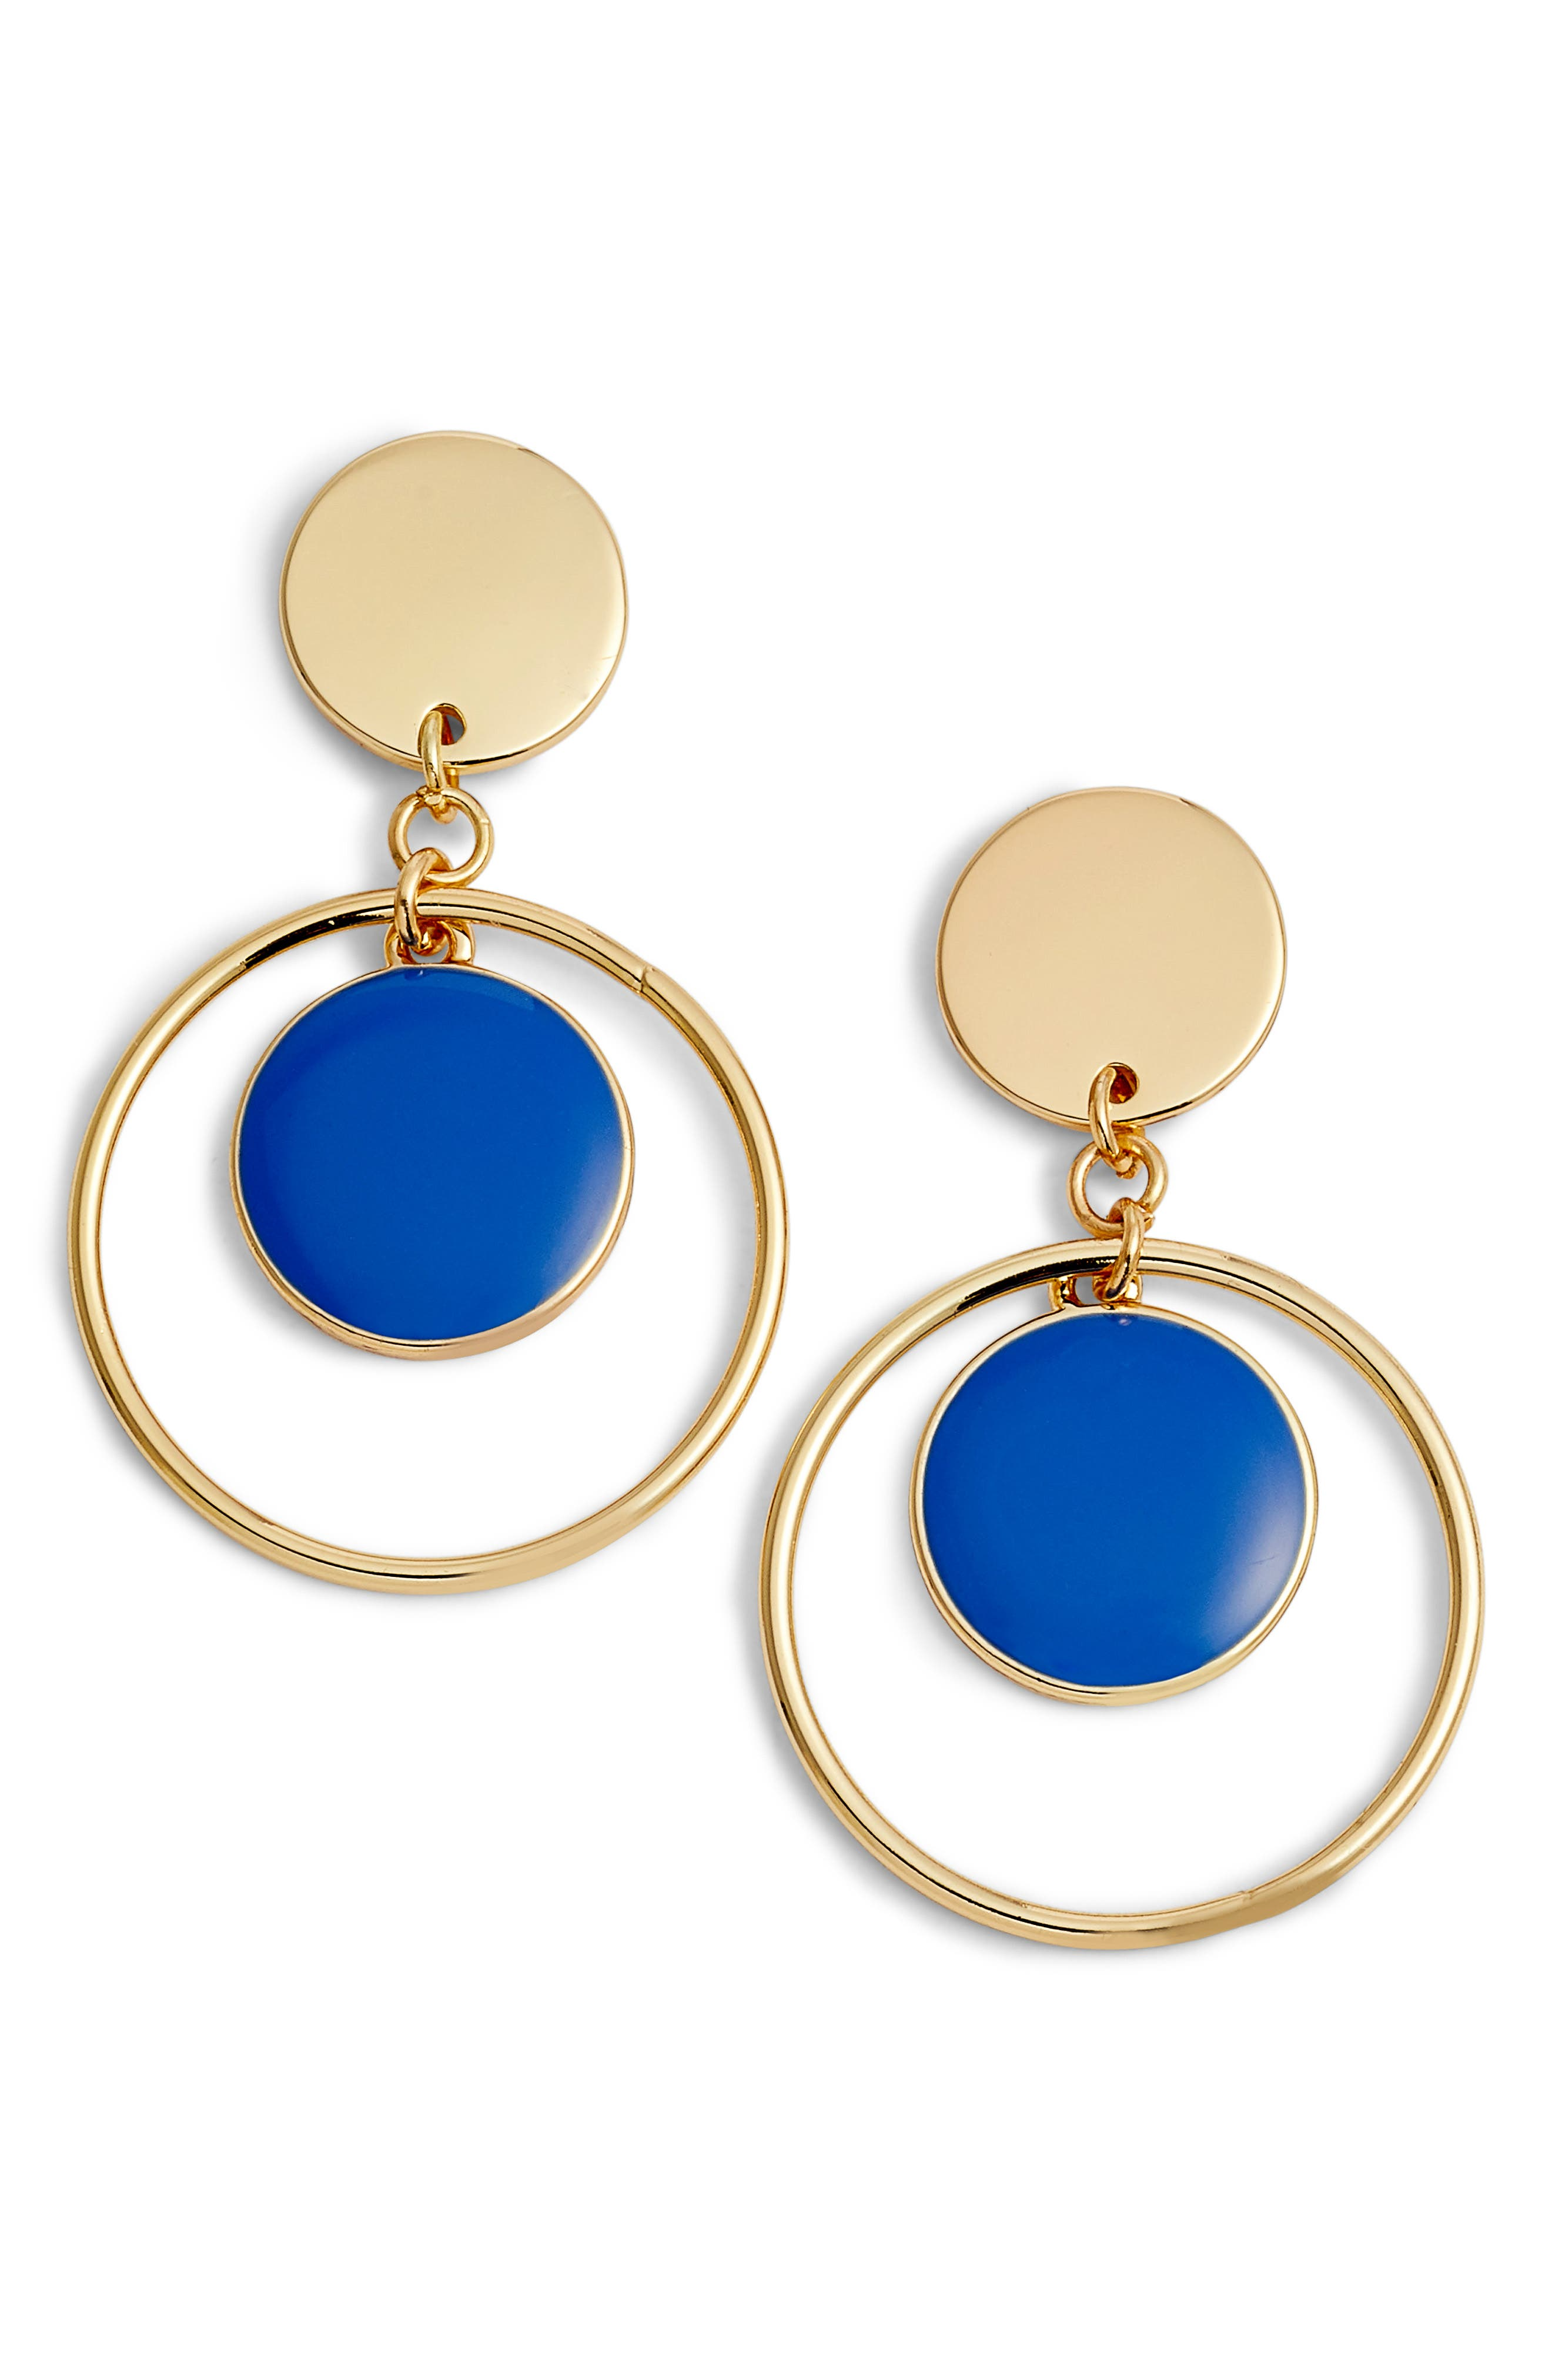 Double Disc with Hoop Drop Earrings,                             Main thumbnail 1, color,                             Blue- Gold